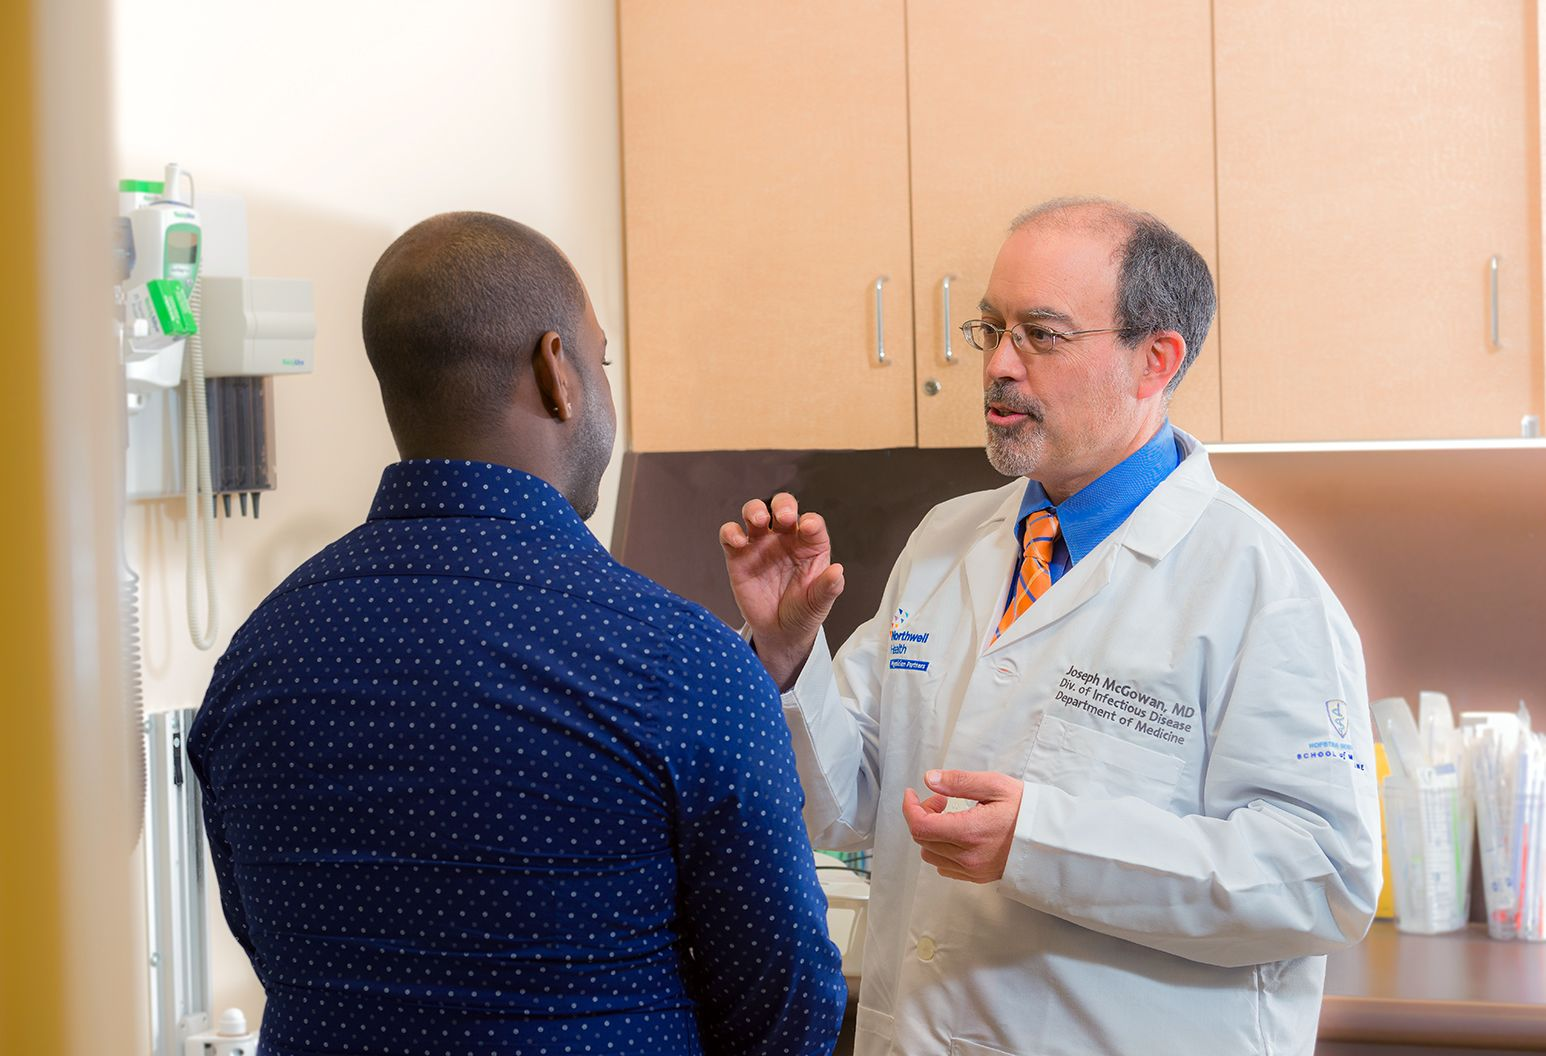 A male doctor in a white lab coat and glasses spends one-on-one time with a male patient, explaining something to him using hand gestures.